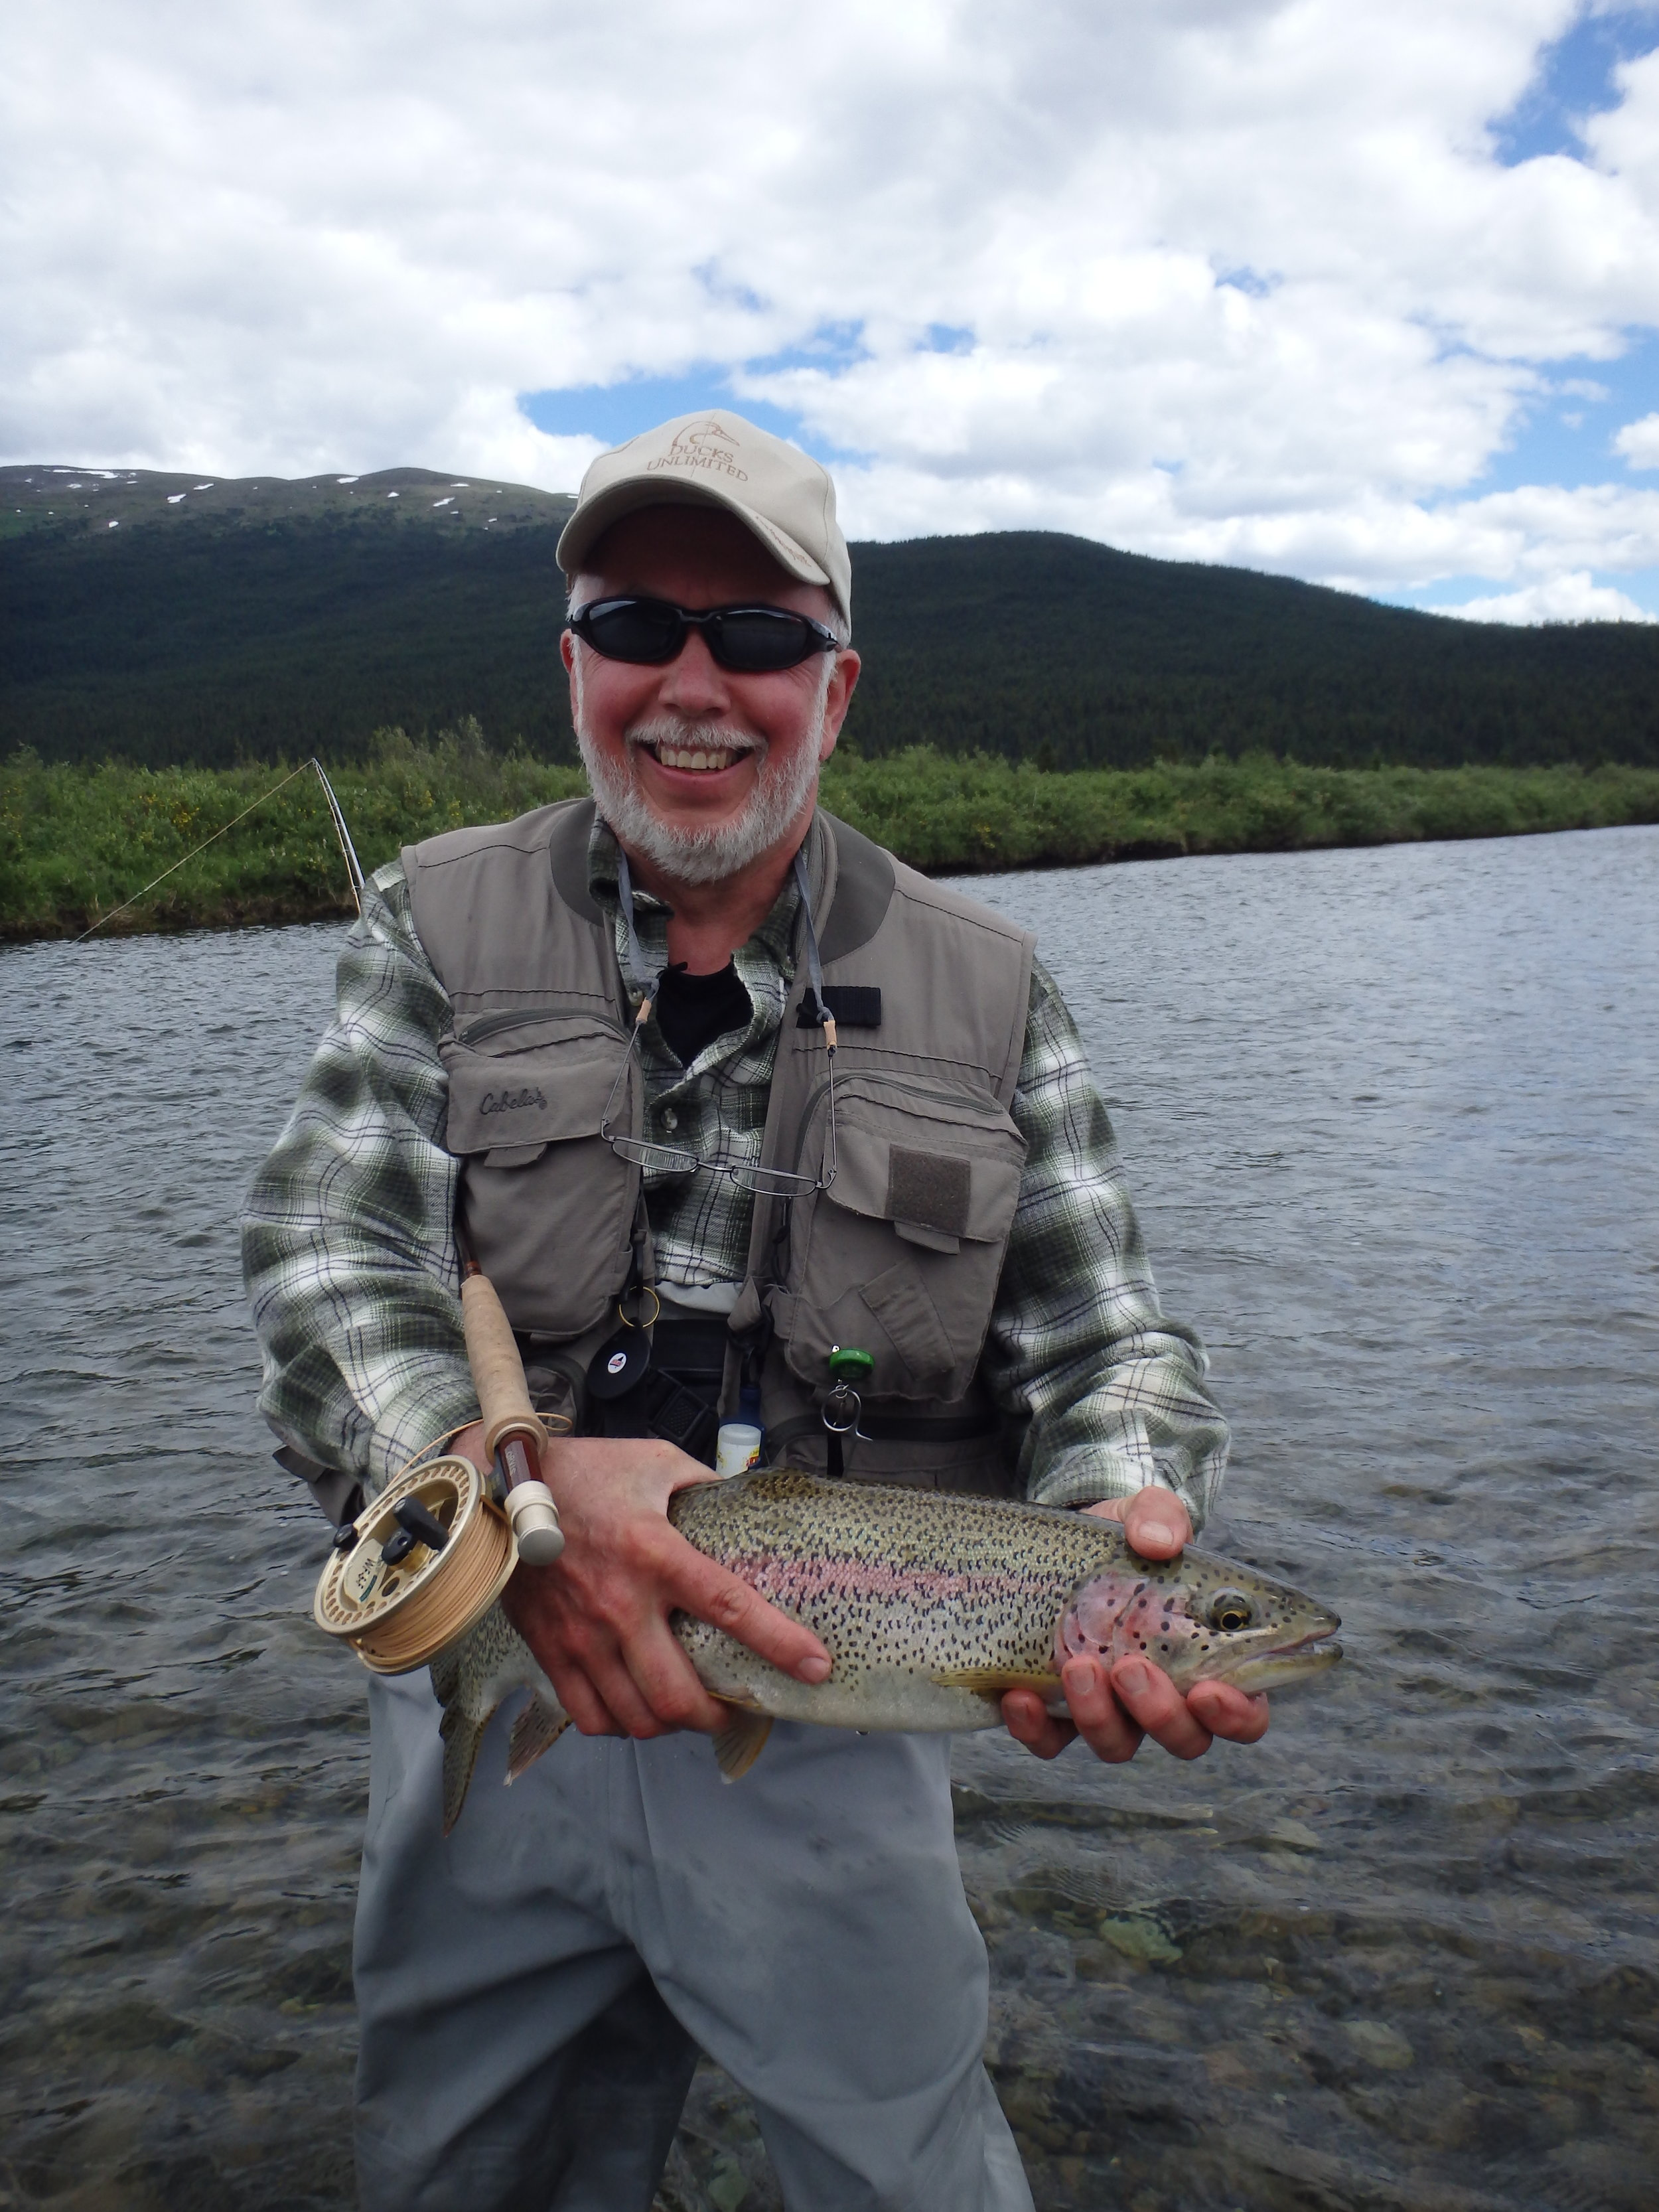 Proud fisherman with a Rainbow Trout